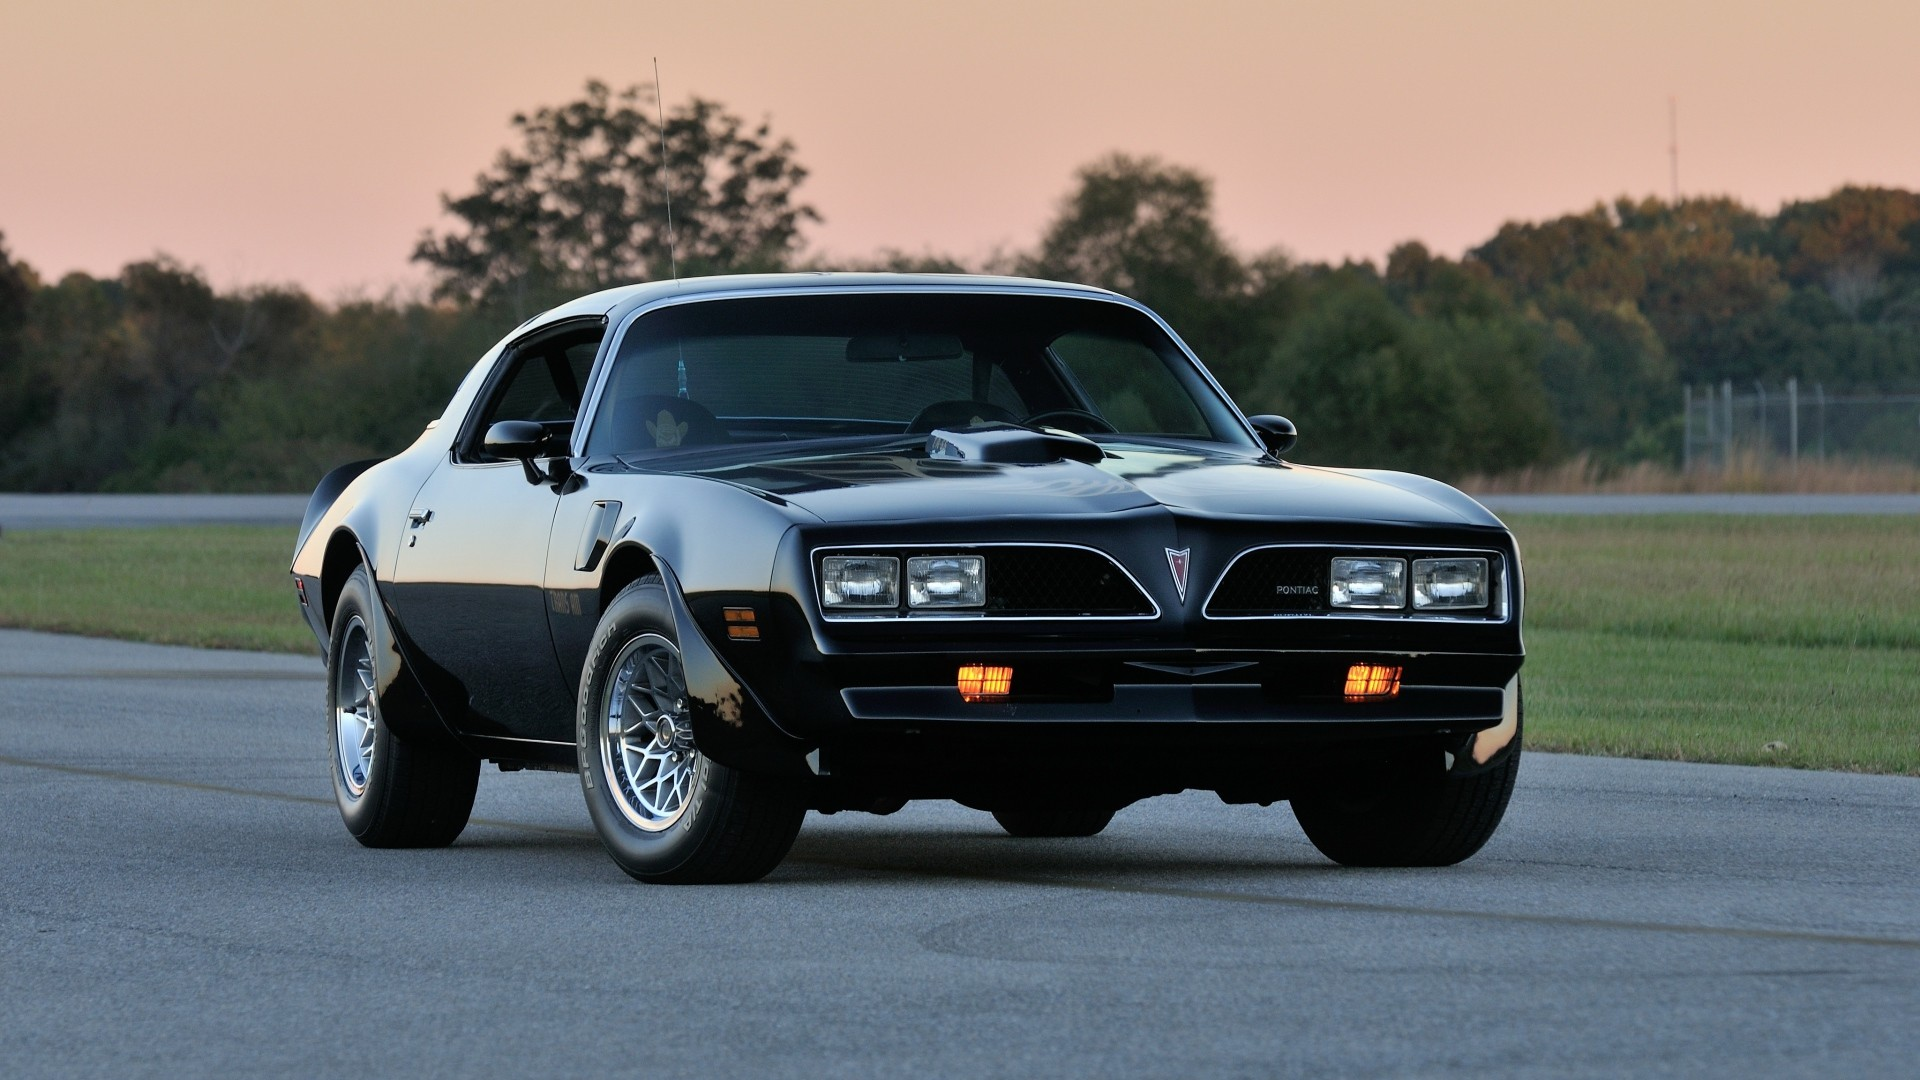 1920x1080 Full HD Wallpaper pontiac firebird front view